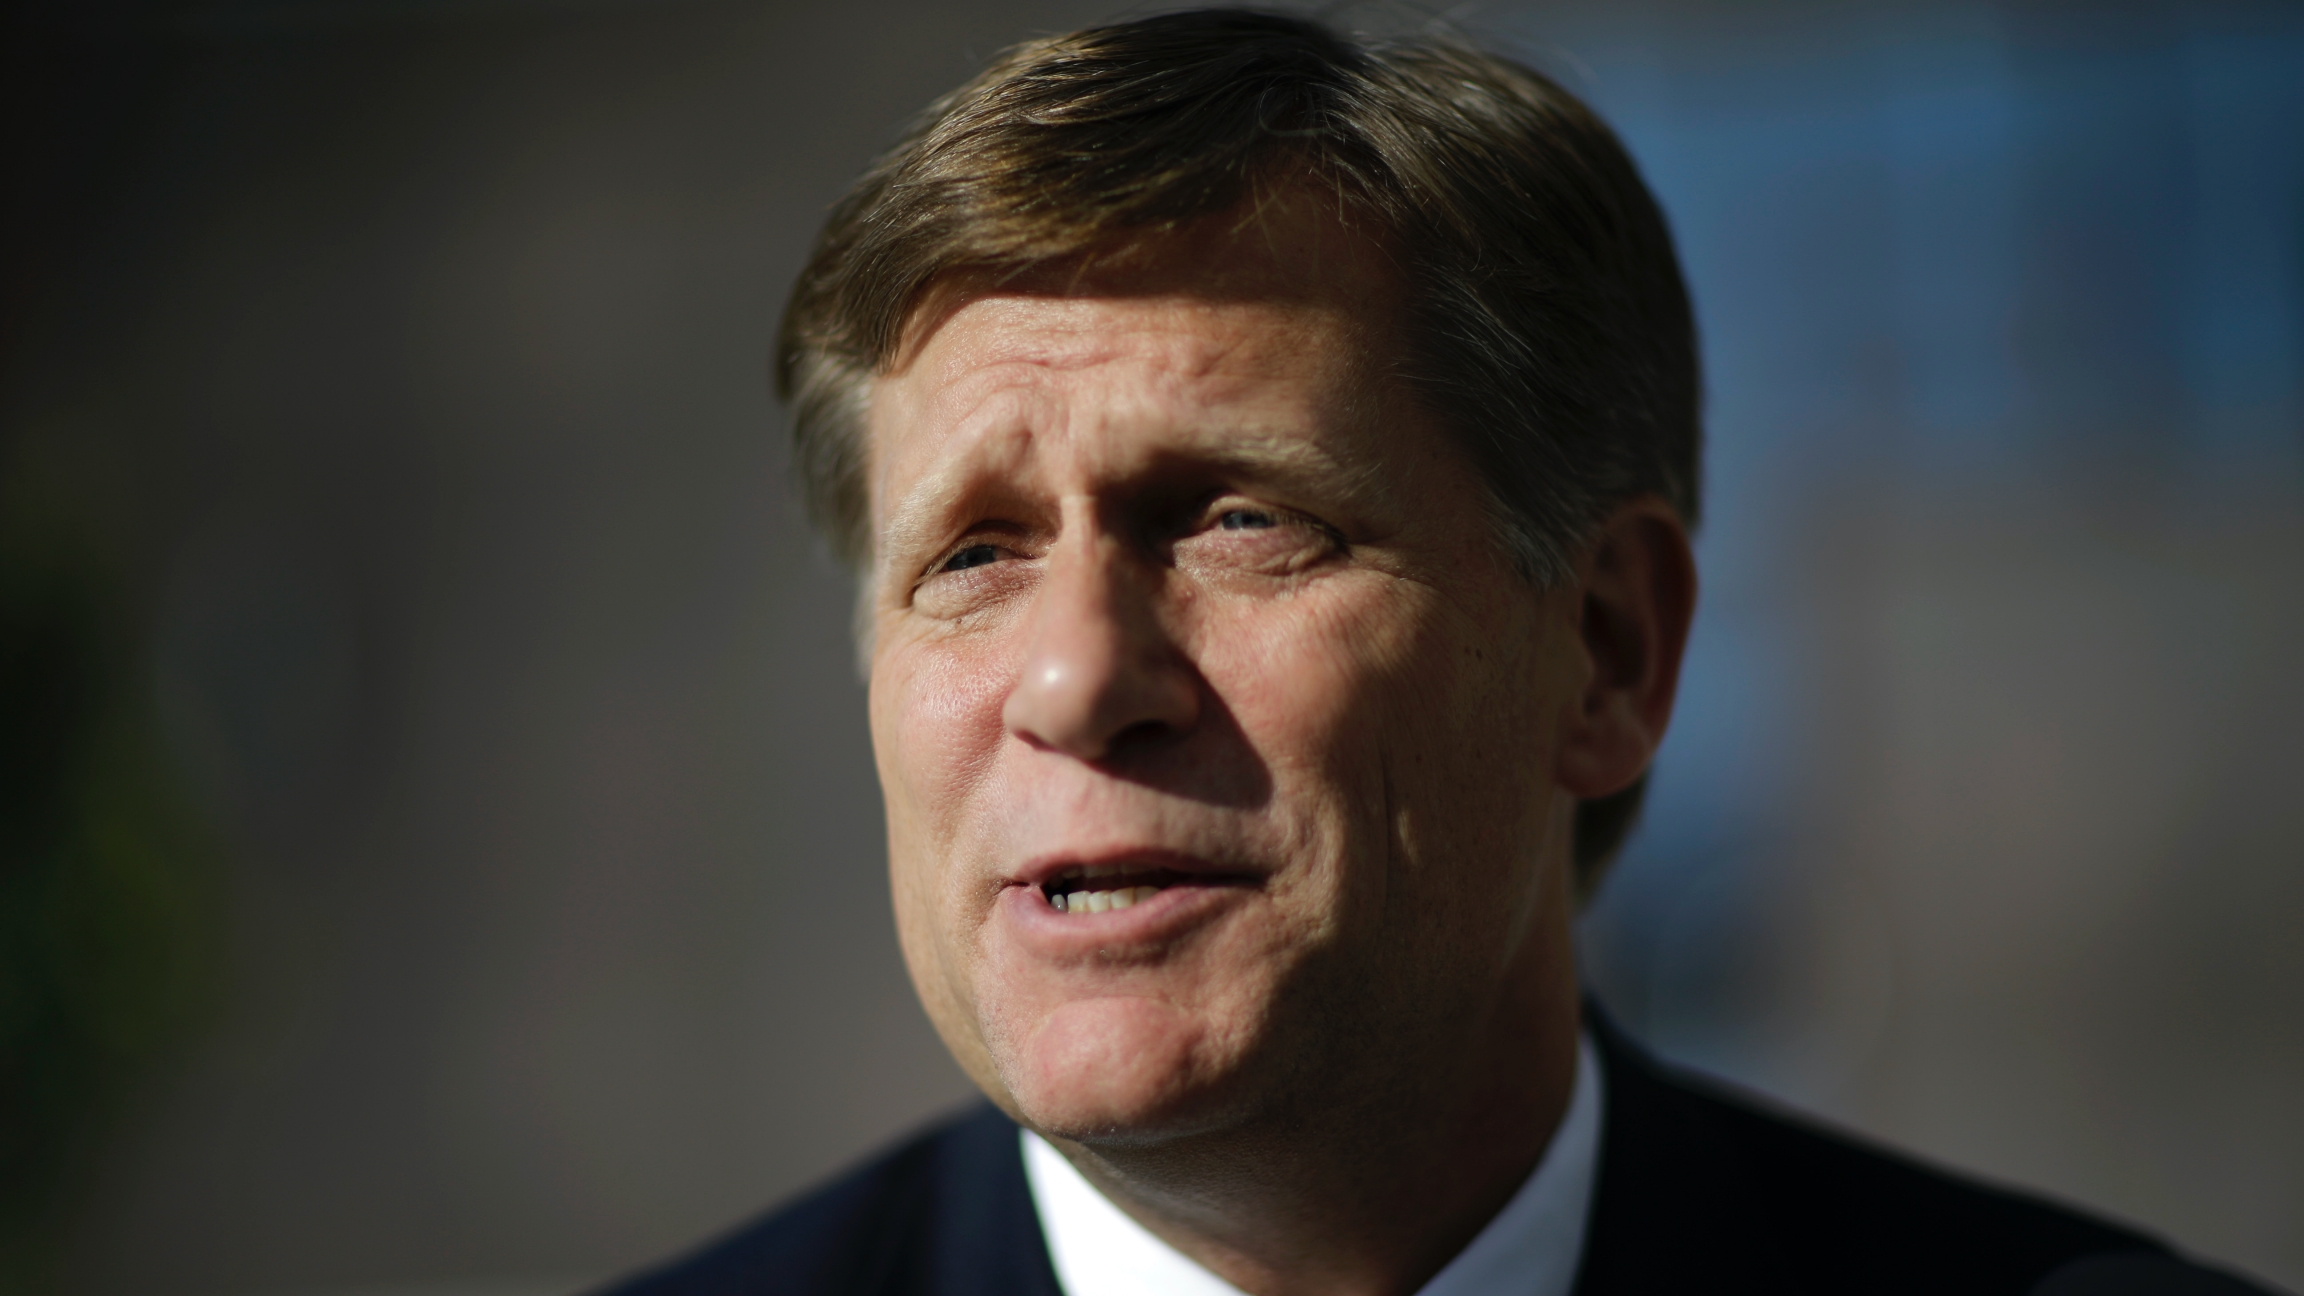 Former US ambassador to Russia, Michael McFaul, speaks with a reporter in Sochi, Russia, Feb. 7, 2014.